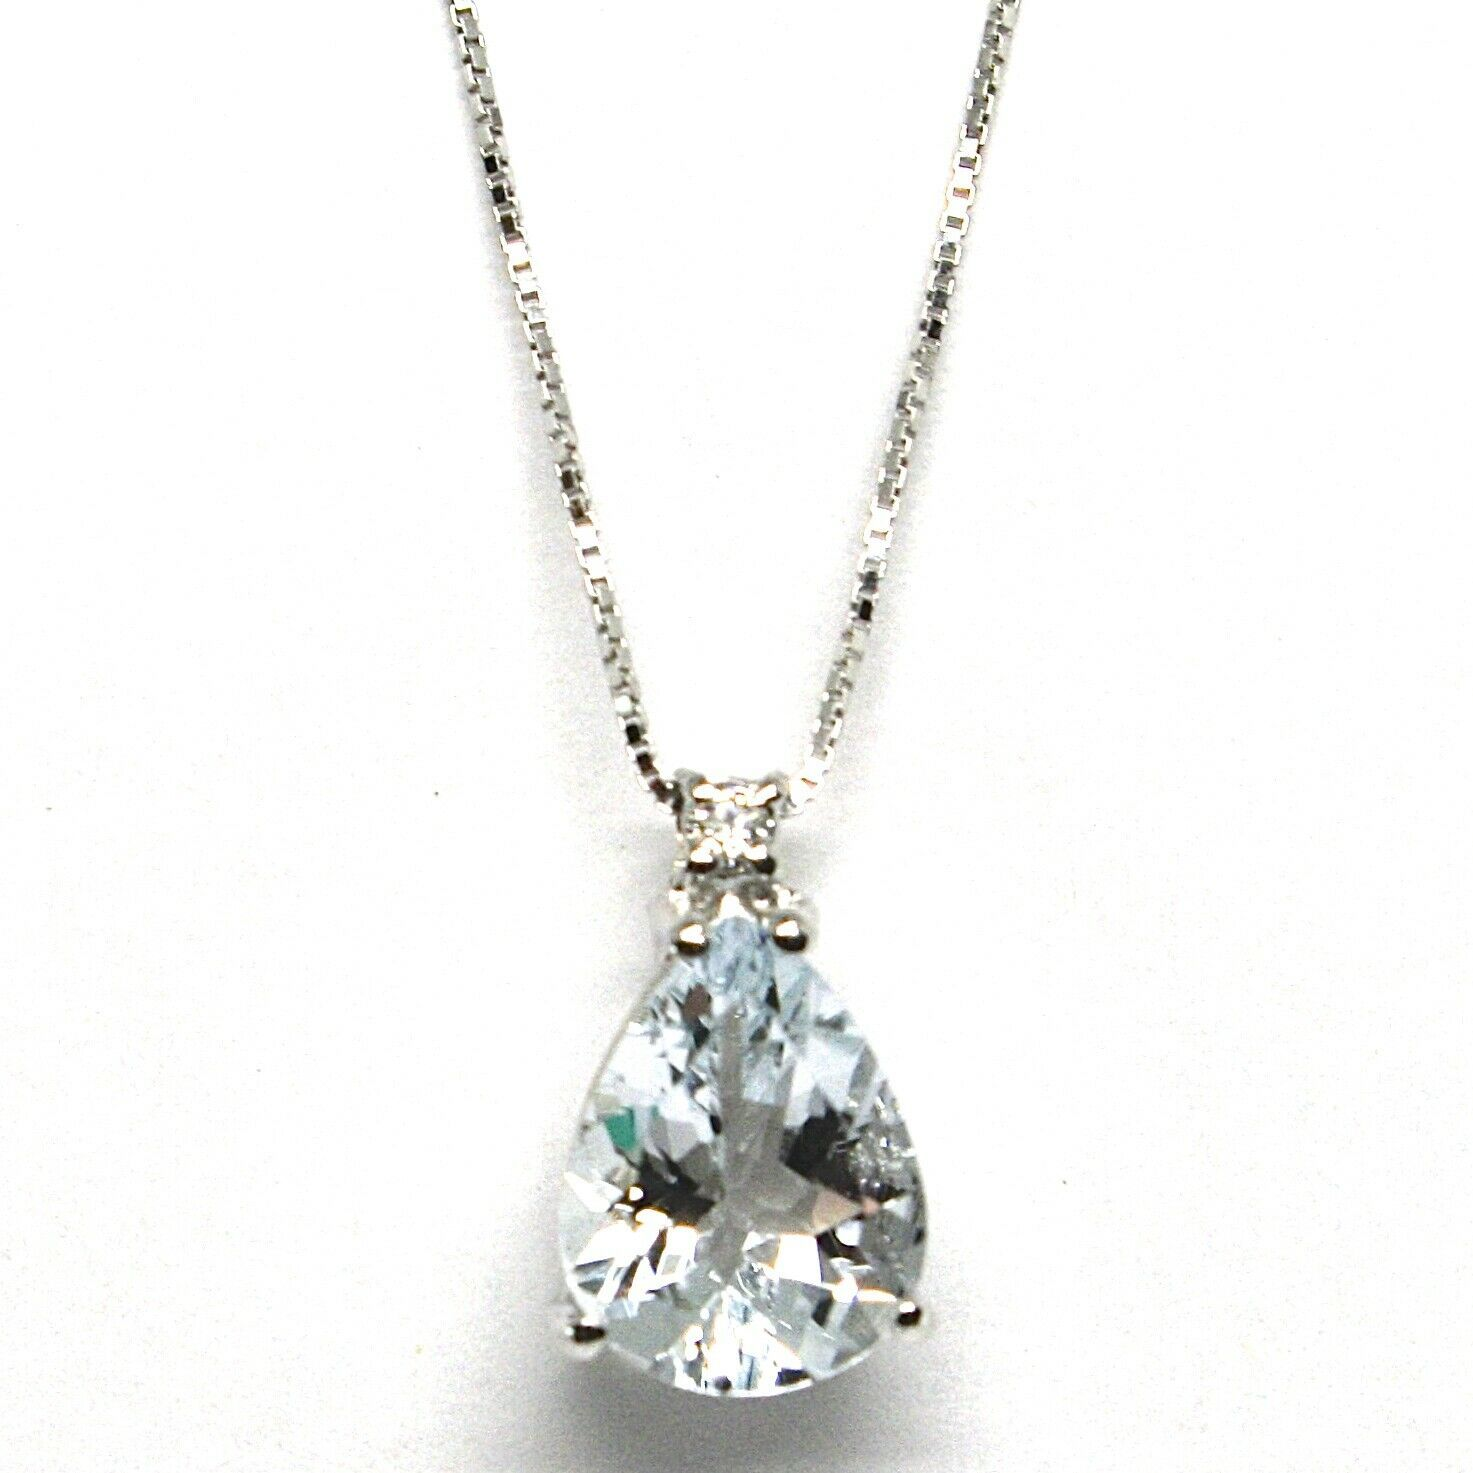 18K WHITE GOLD NECKLACE AQUAMARINE 1.60 DROP CUT & DIAMOND, PENDANT & CHAIN